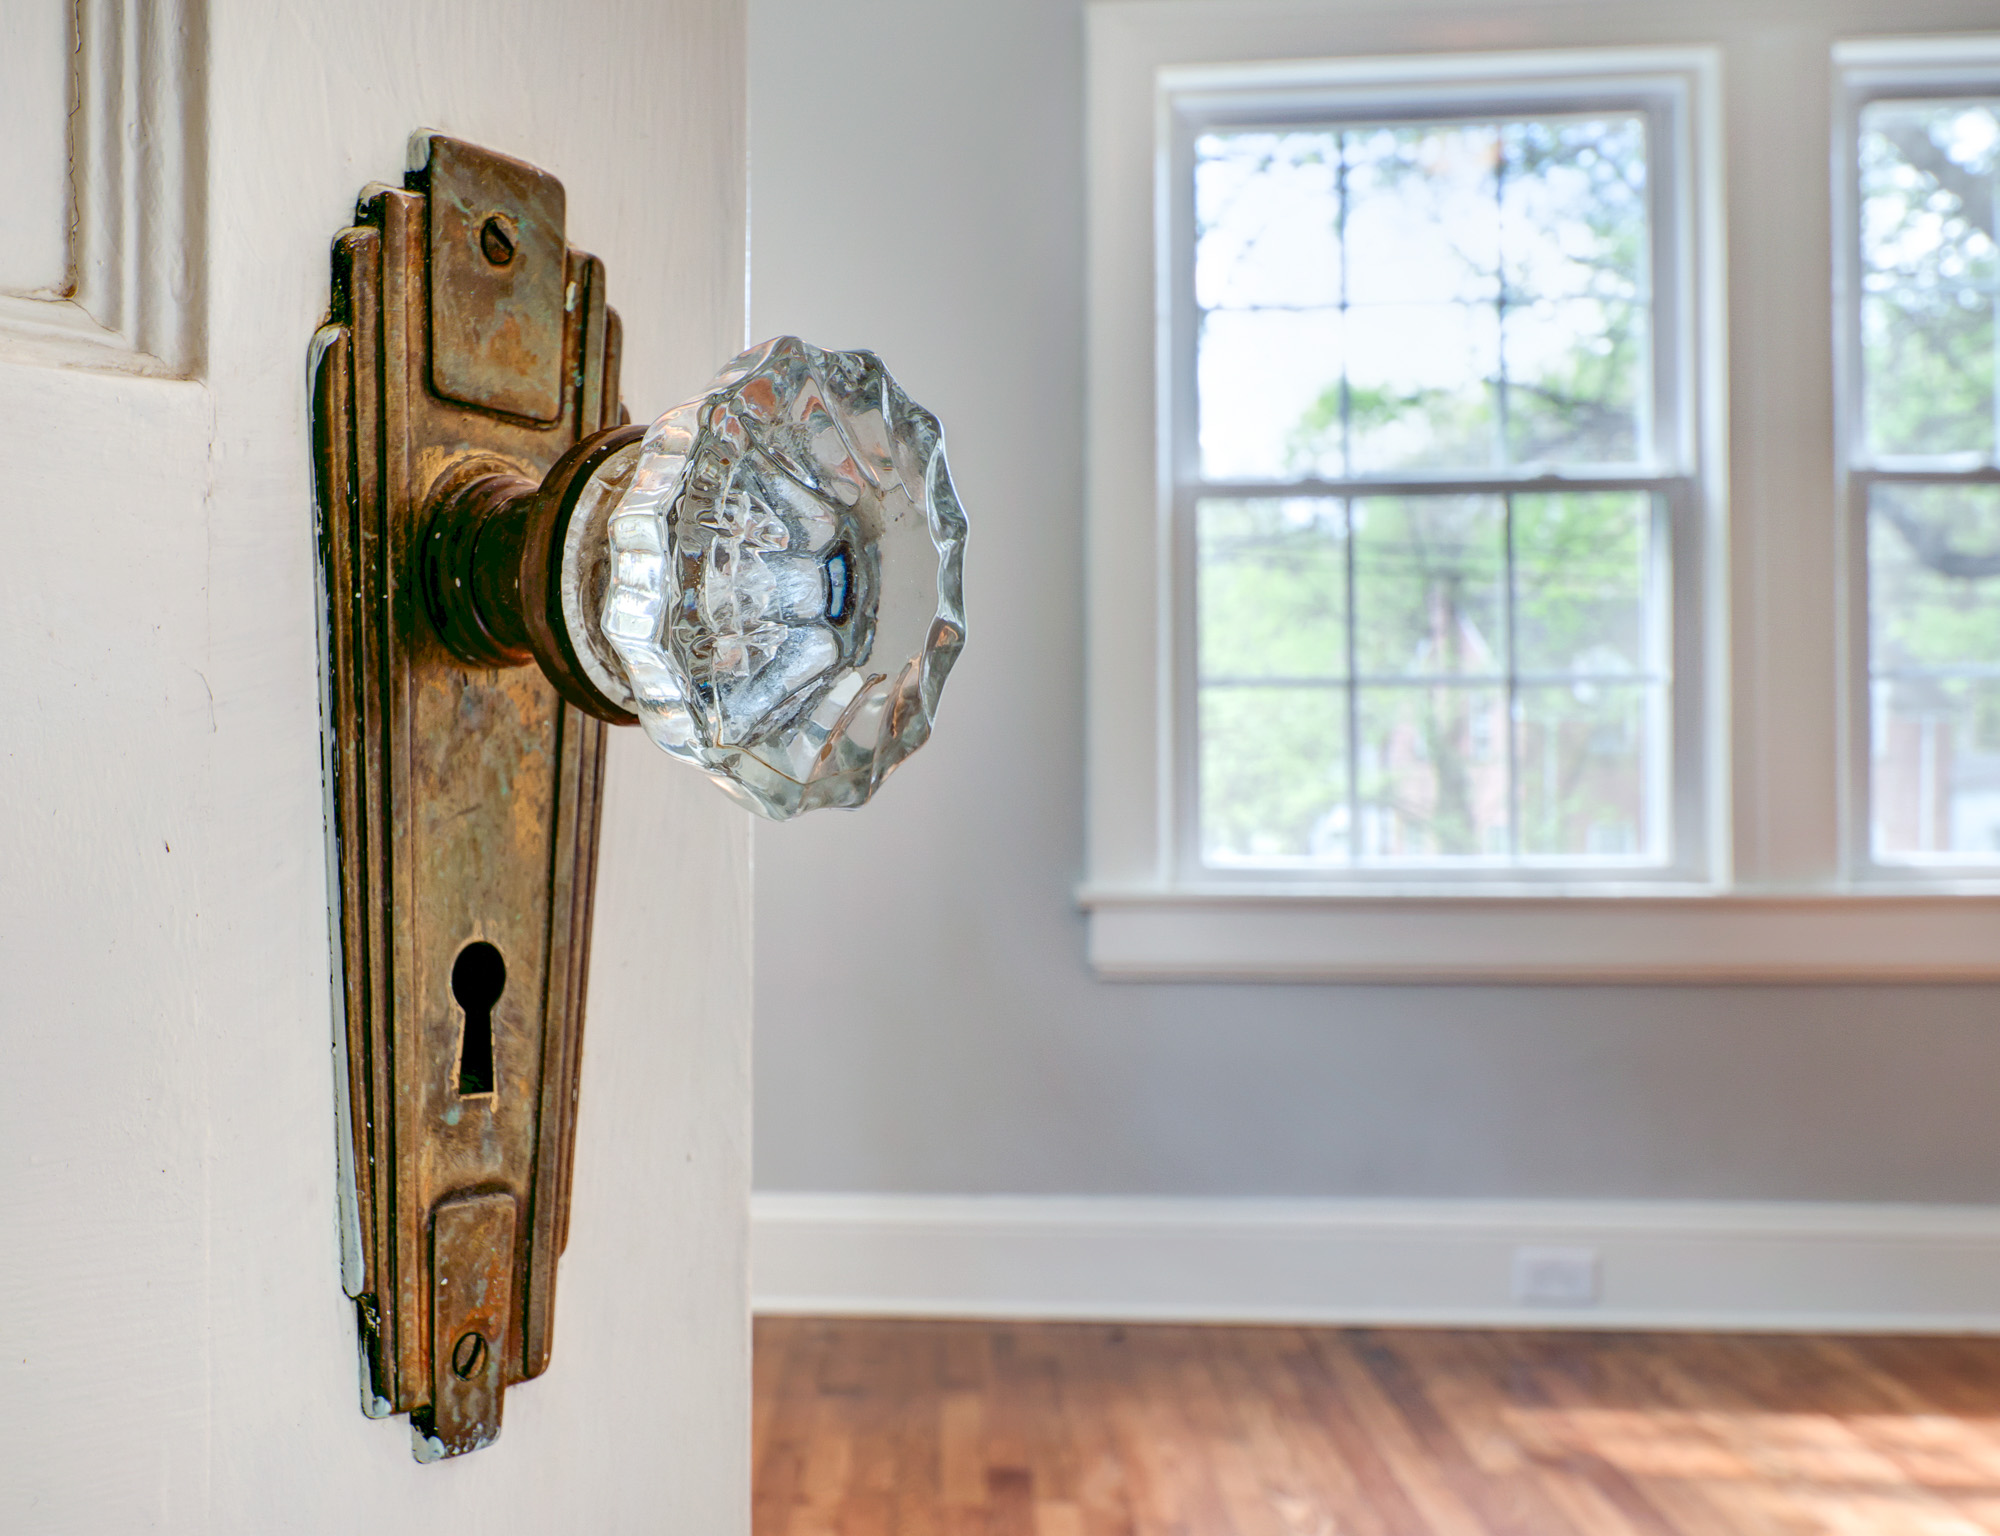 Real Estate Photography: Lovely glass door knobs were retained in this thoughtful renovation.